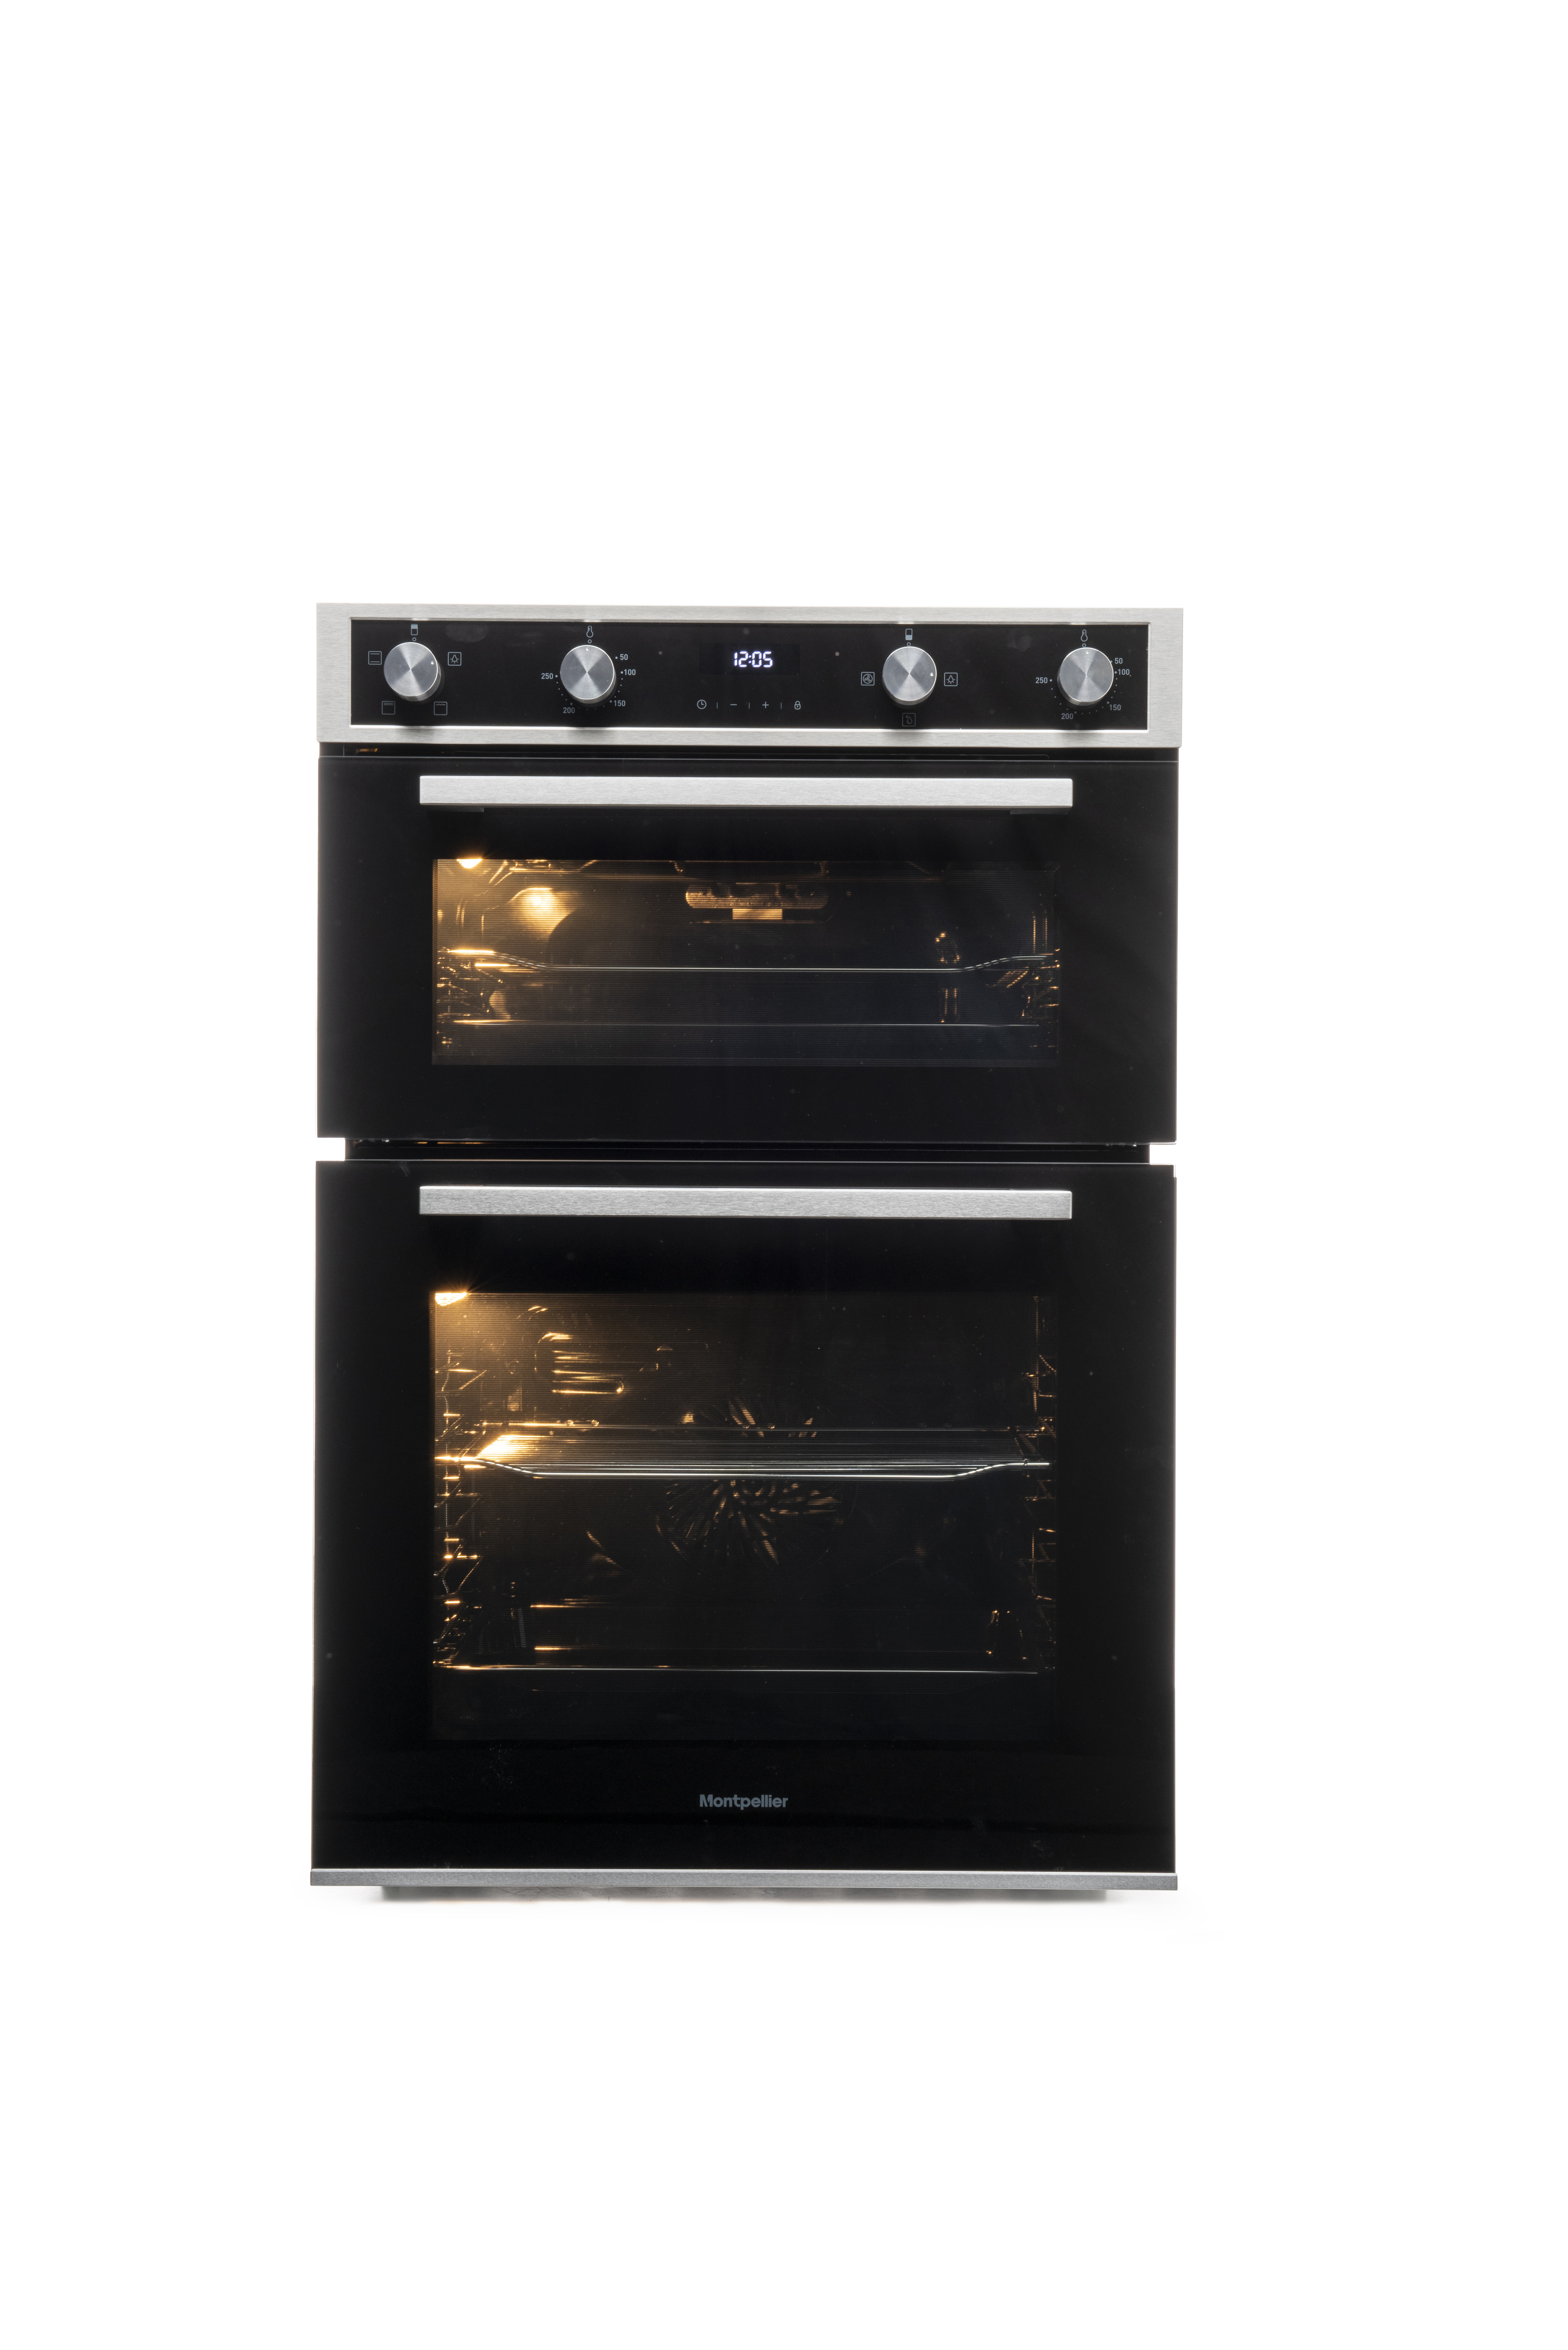 Montpellier DO3570IB Built In Double Oven